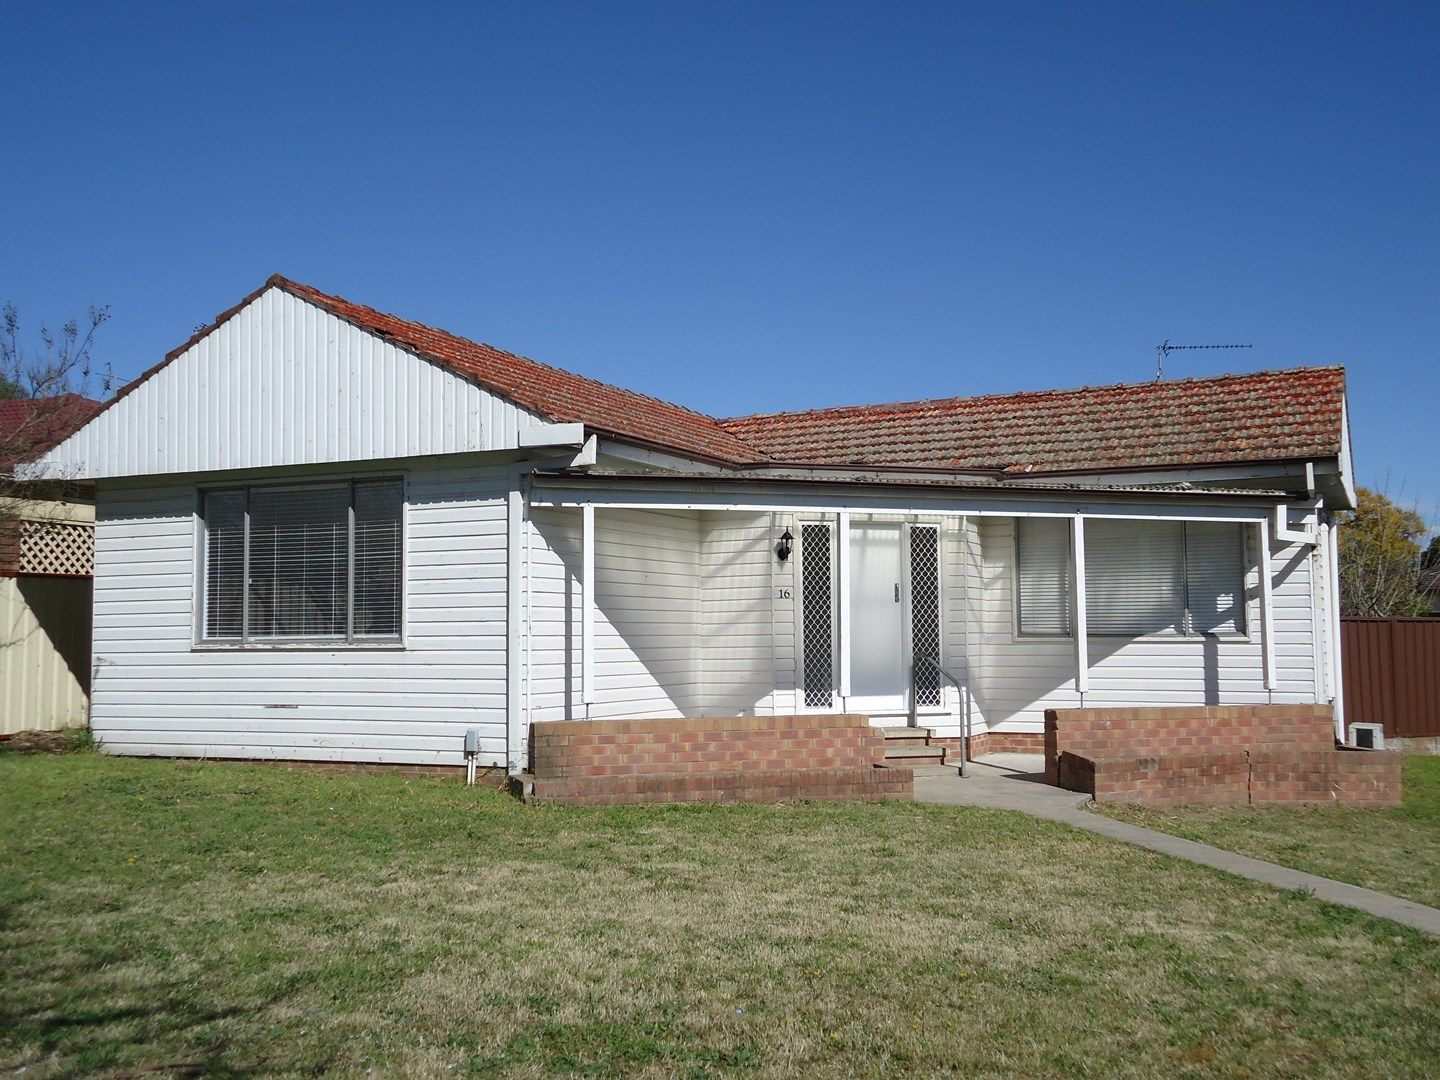 16 Ruth White Avenue, Muswellbrook NSW 2333, Image 0